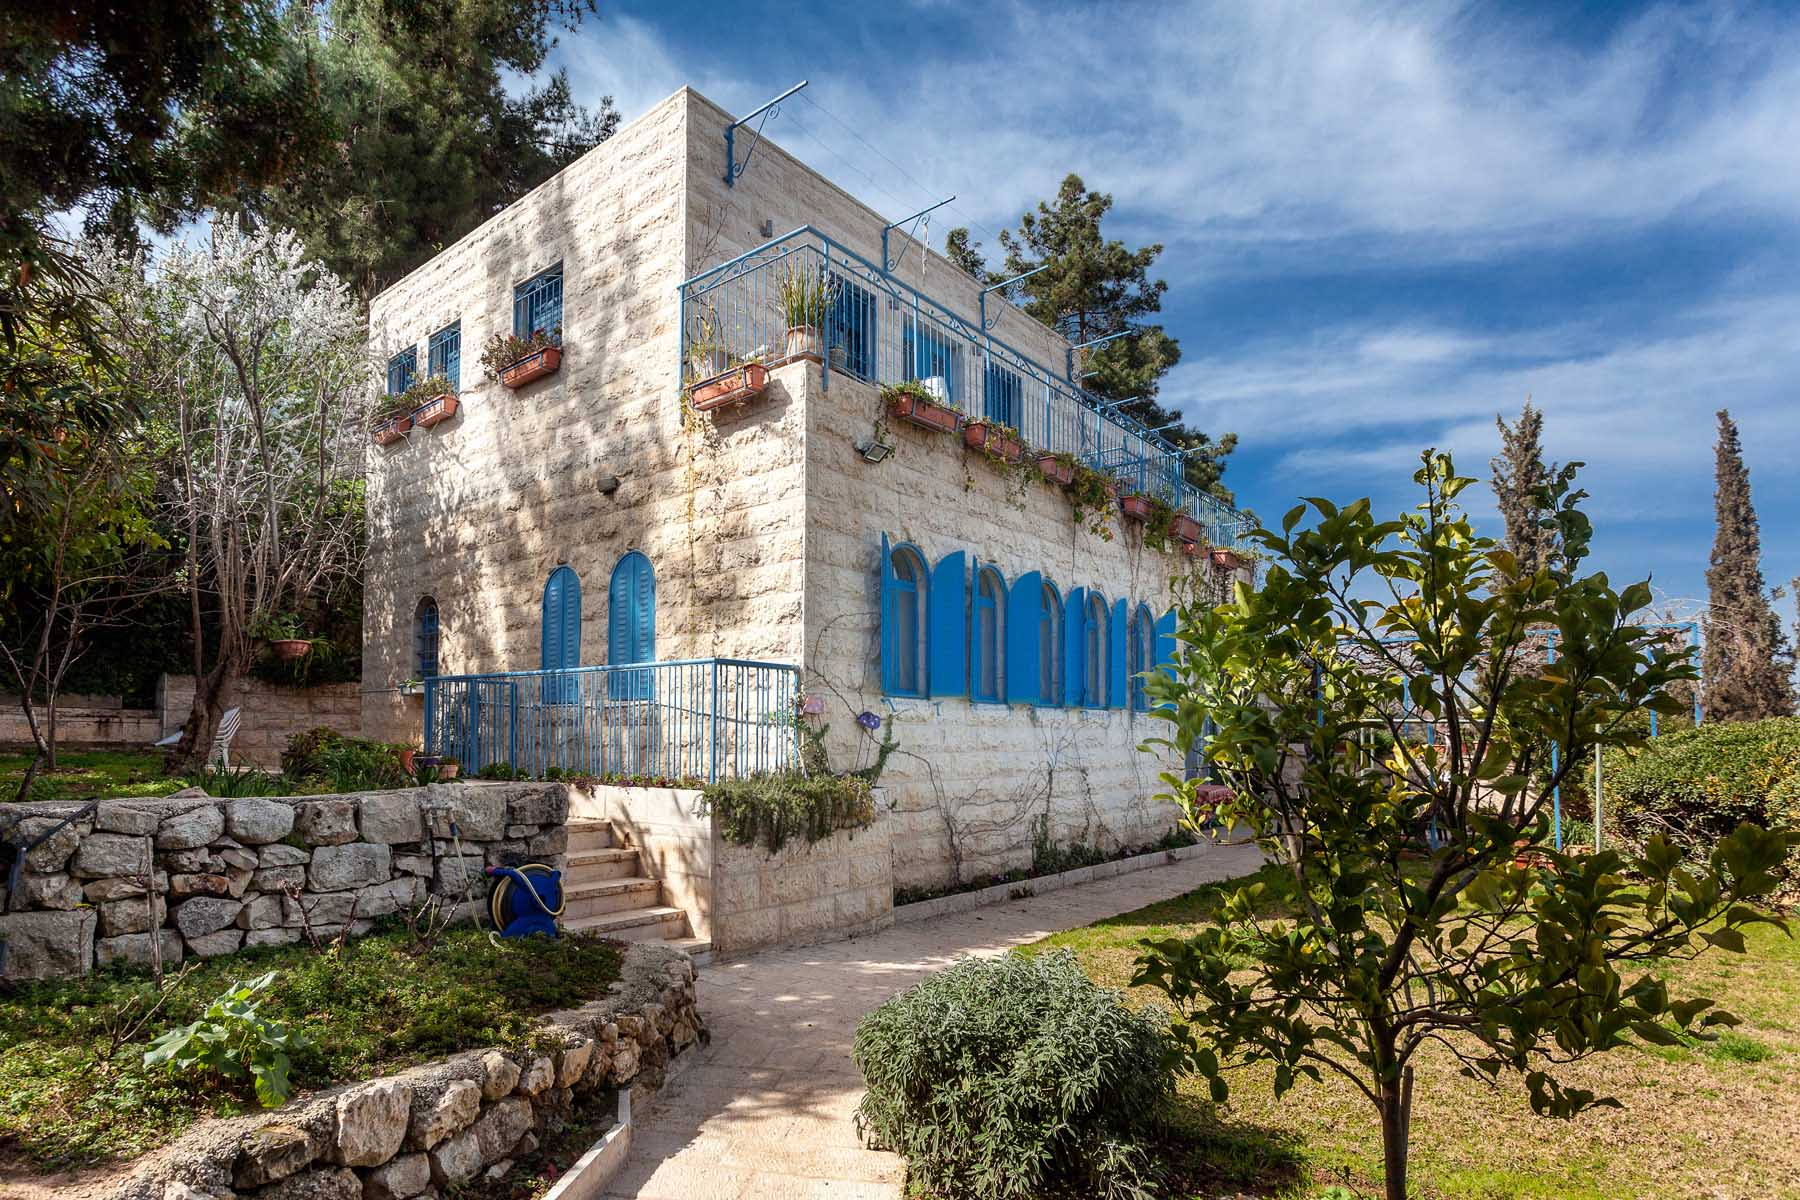 独户住宅 为 销售 在 Extraordinary Villa in Historic Ein Karem Village 耶路撒冷, 以色列 以色列